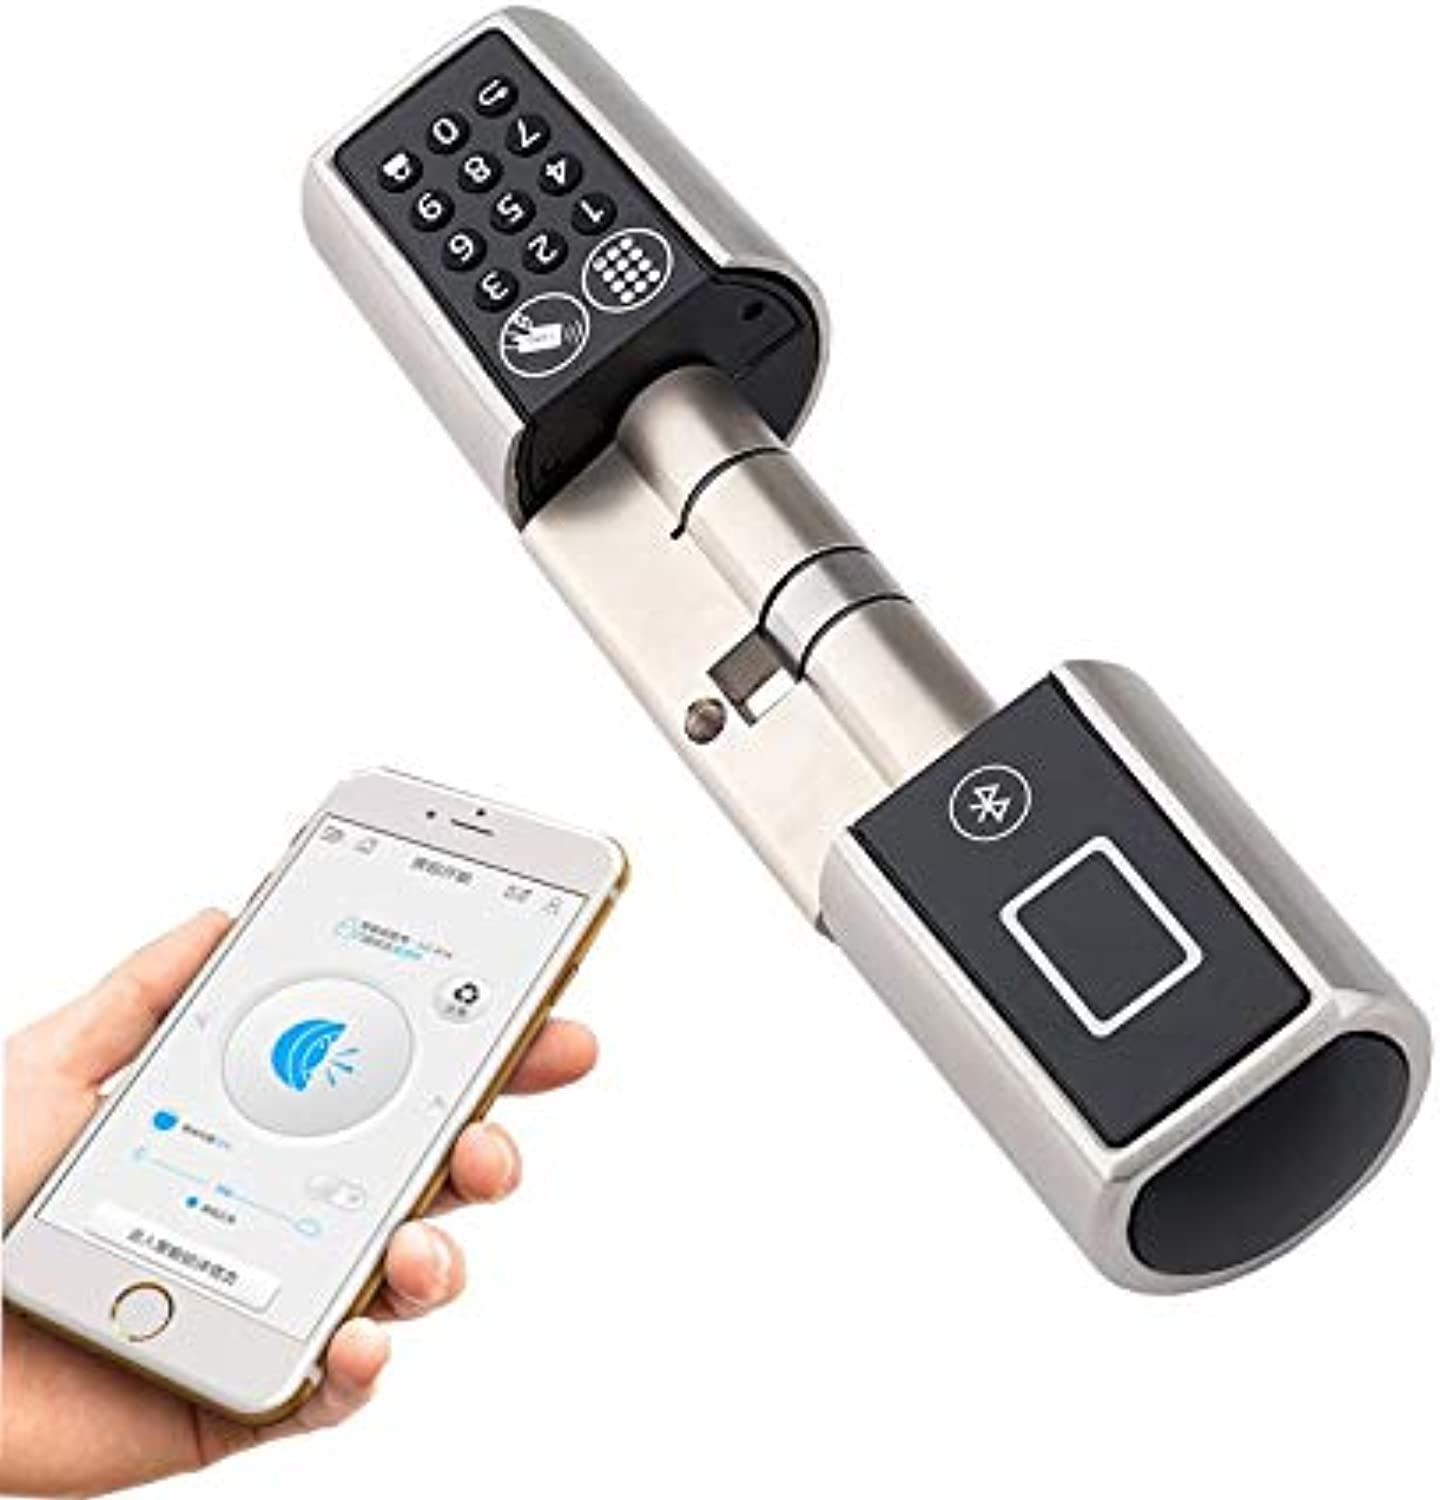 L5PC+B Smart Home Code Door Lock Cylinder blueetooth Electronic Door Lock Cylinder Unlock by Code Card & blueetooth Mobile